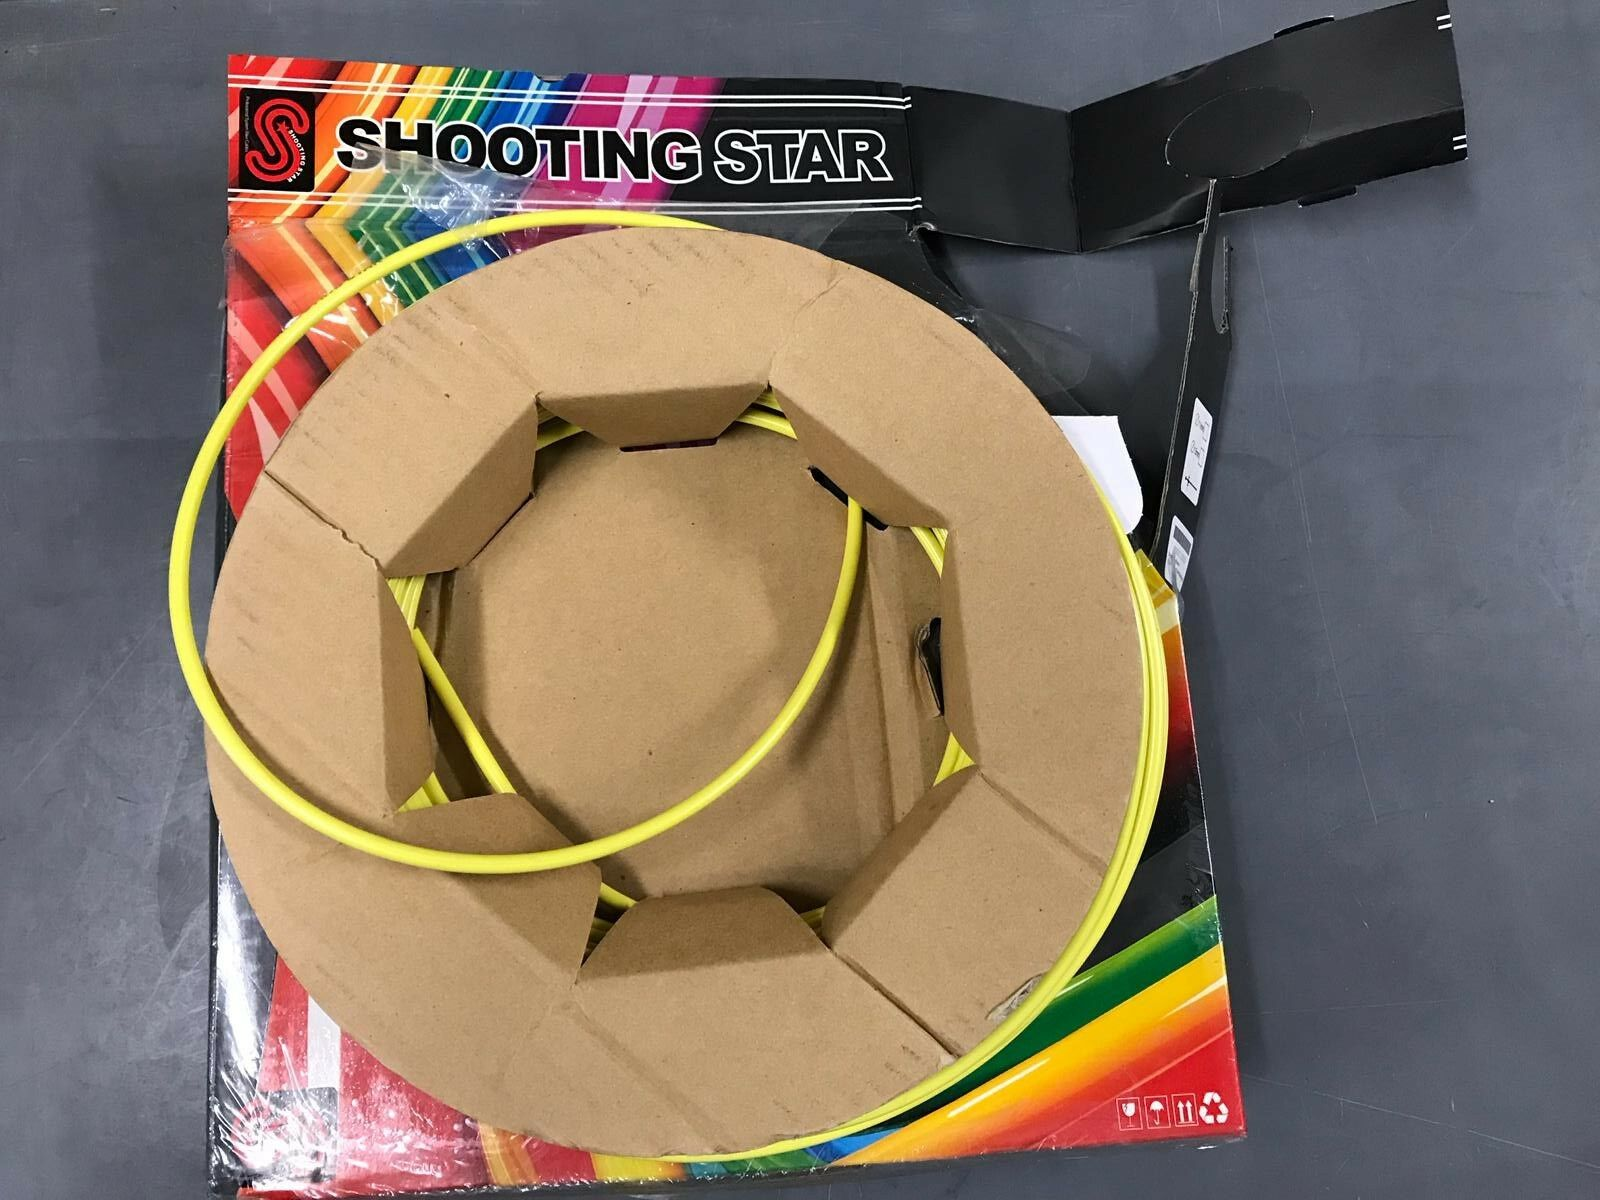 Shooting Star 50m Cable Shell BOX - 5mm  Outer Brake Cable Shell (Yellow Colour)  buy best